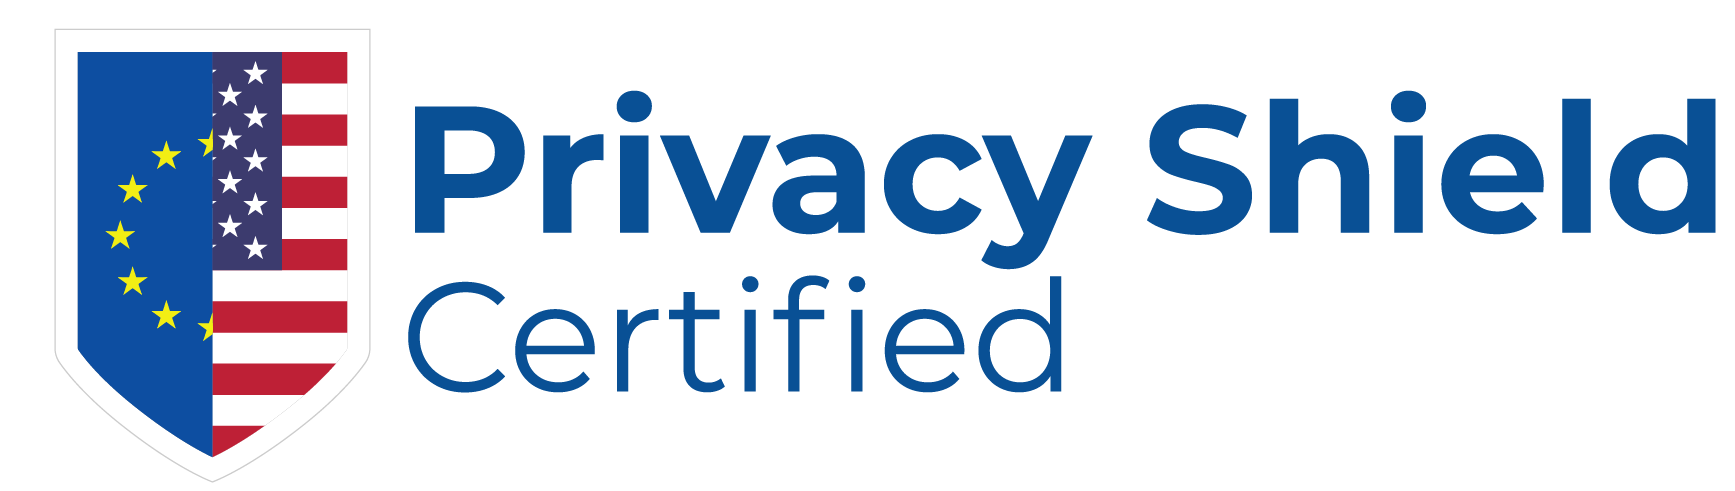 PNG_US-Privacy-Shield-2